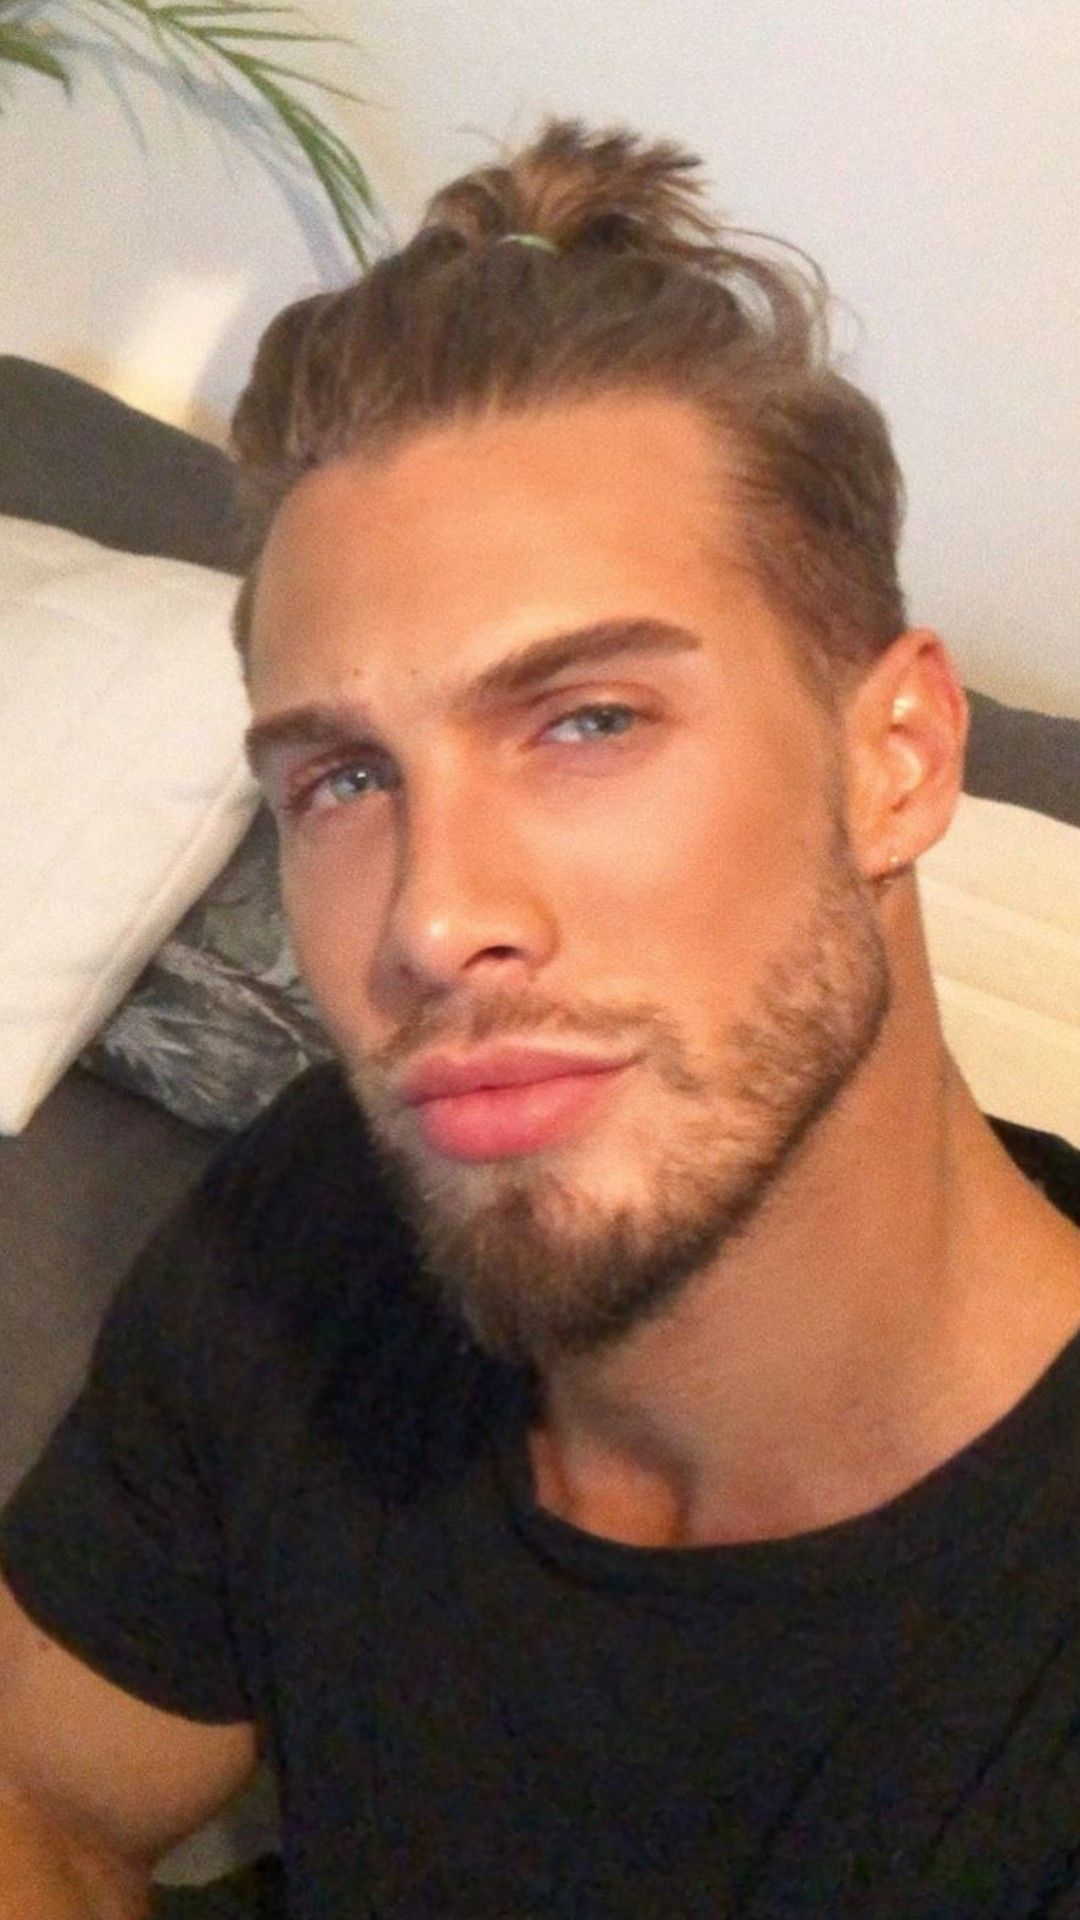 Pin By Justlifestyle On Hottest Hunks How To Look Better Hot Hunks Handsome Men